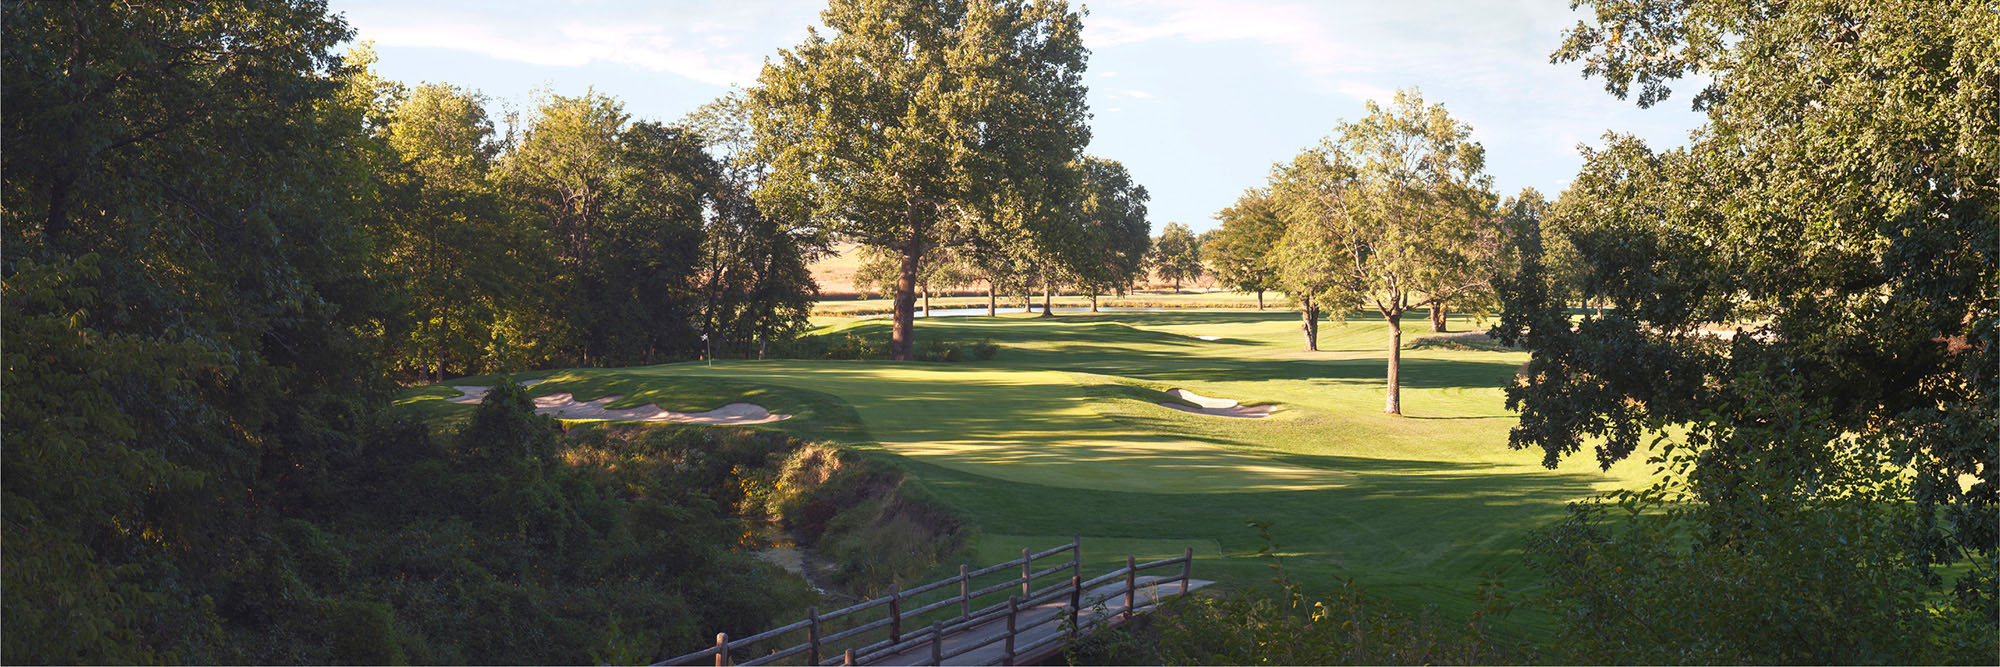 Golf Course Image - Wolf Creek No. 11